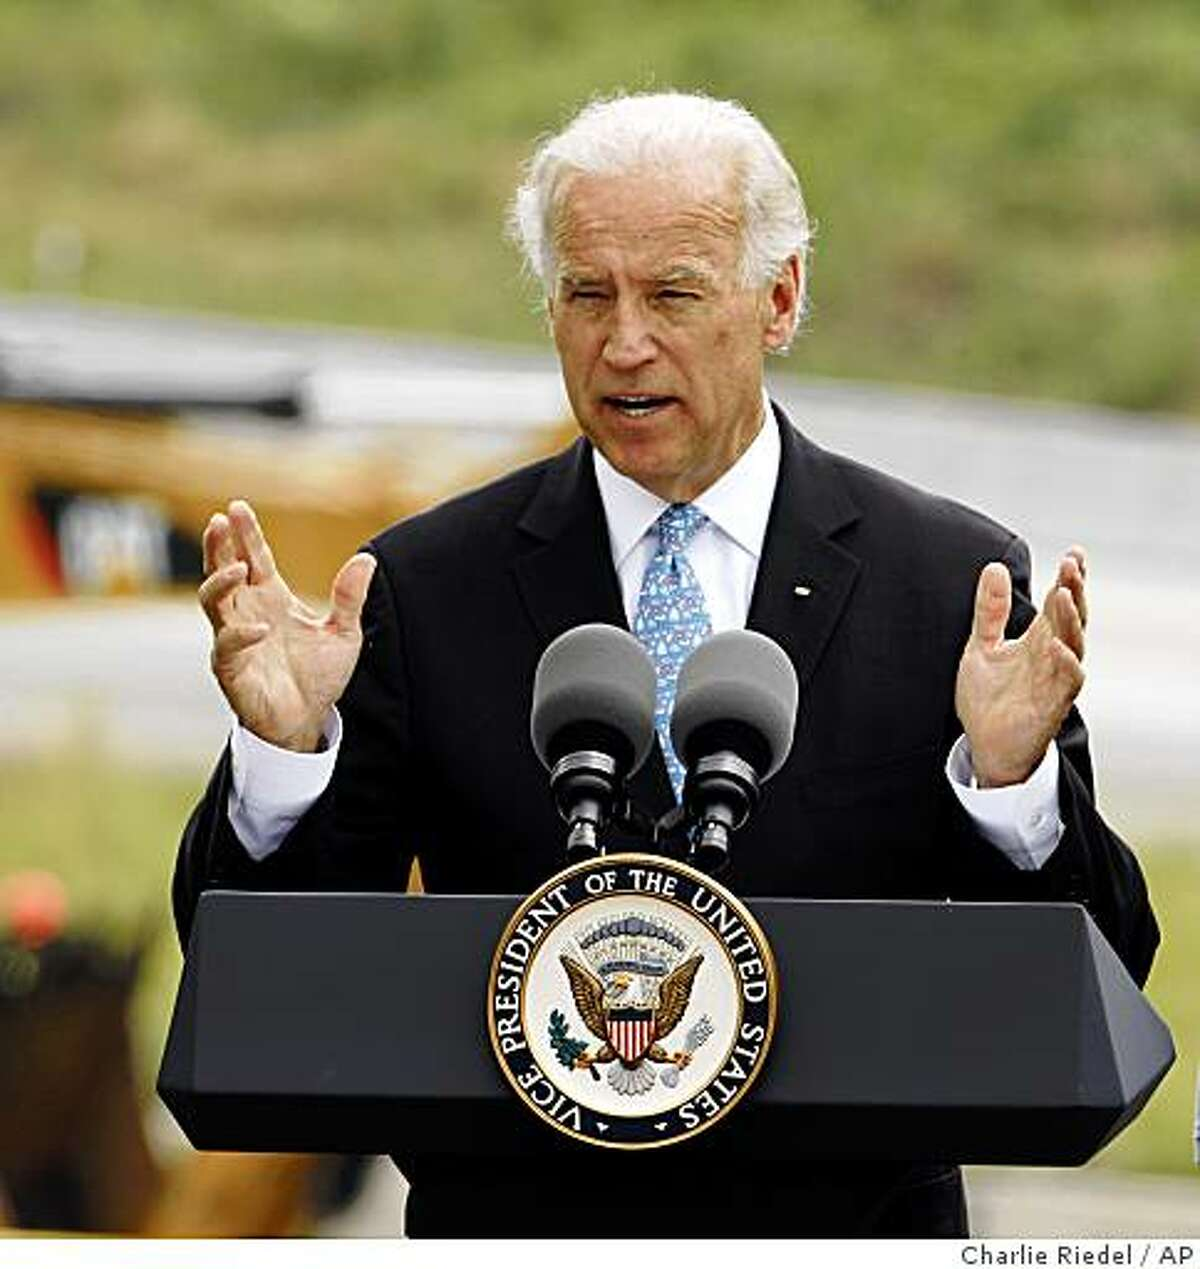 Vice President Joe Biden talks about the stimulus program after touring a project to rebuild part of U.S. 69 Thursday, June 11, 2009, in Overland Park, Kan. The trip is part of a two-day swing highlighting construction projects undertaken with the help of federal recovery funds. (AP Photo/Charlie Riedel)